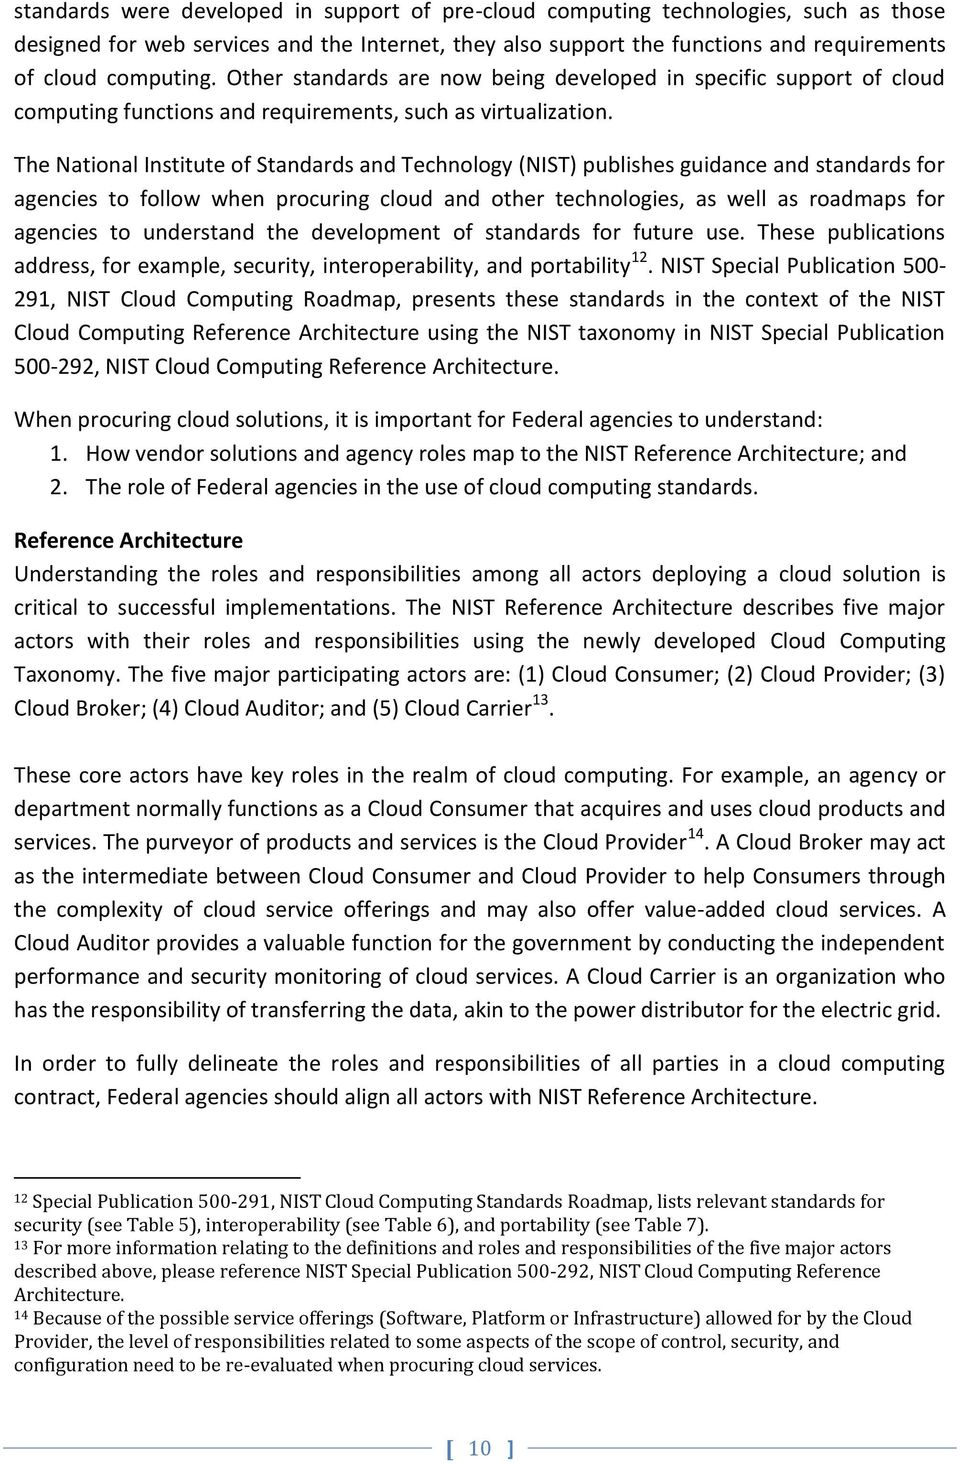 The National Institute of Standards and Technology (NIST) publishes guidance and standards for agencies to follow when procuring cloud and other technologies, as well as roadmaps for agencies to